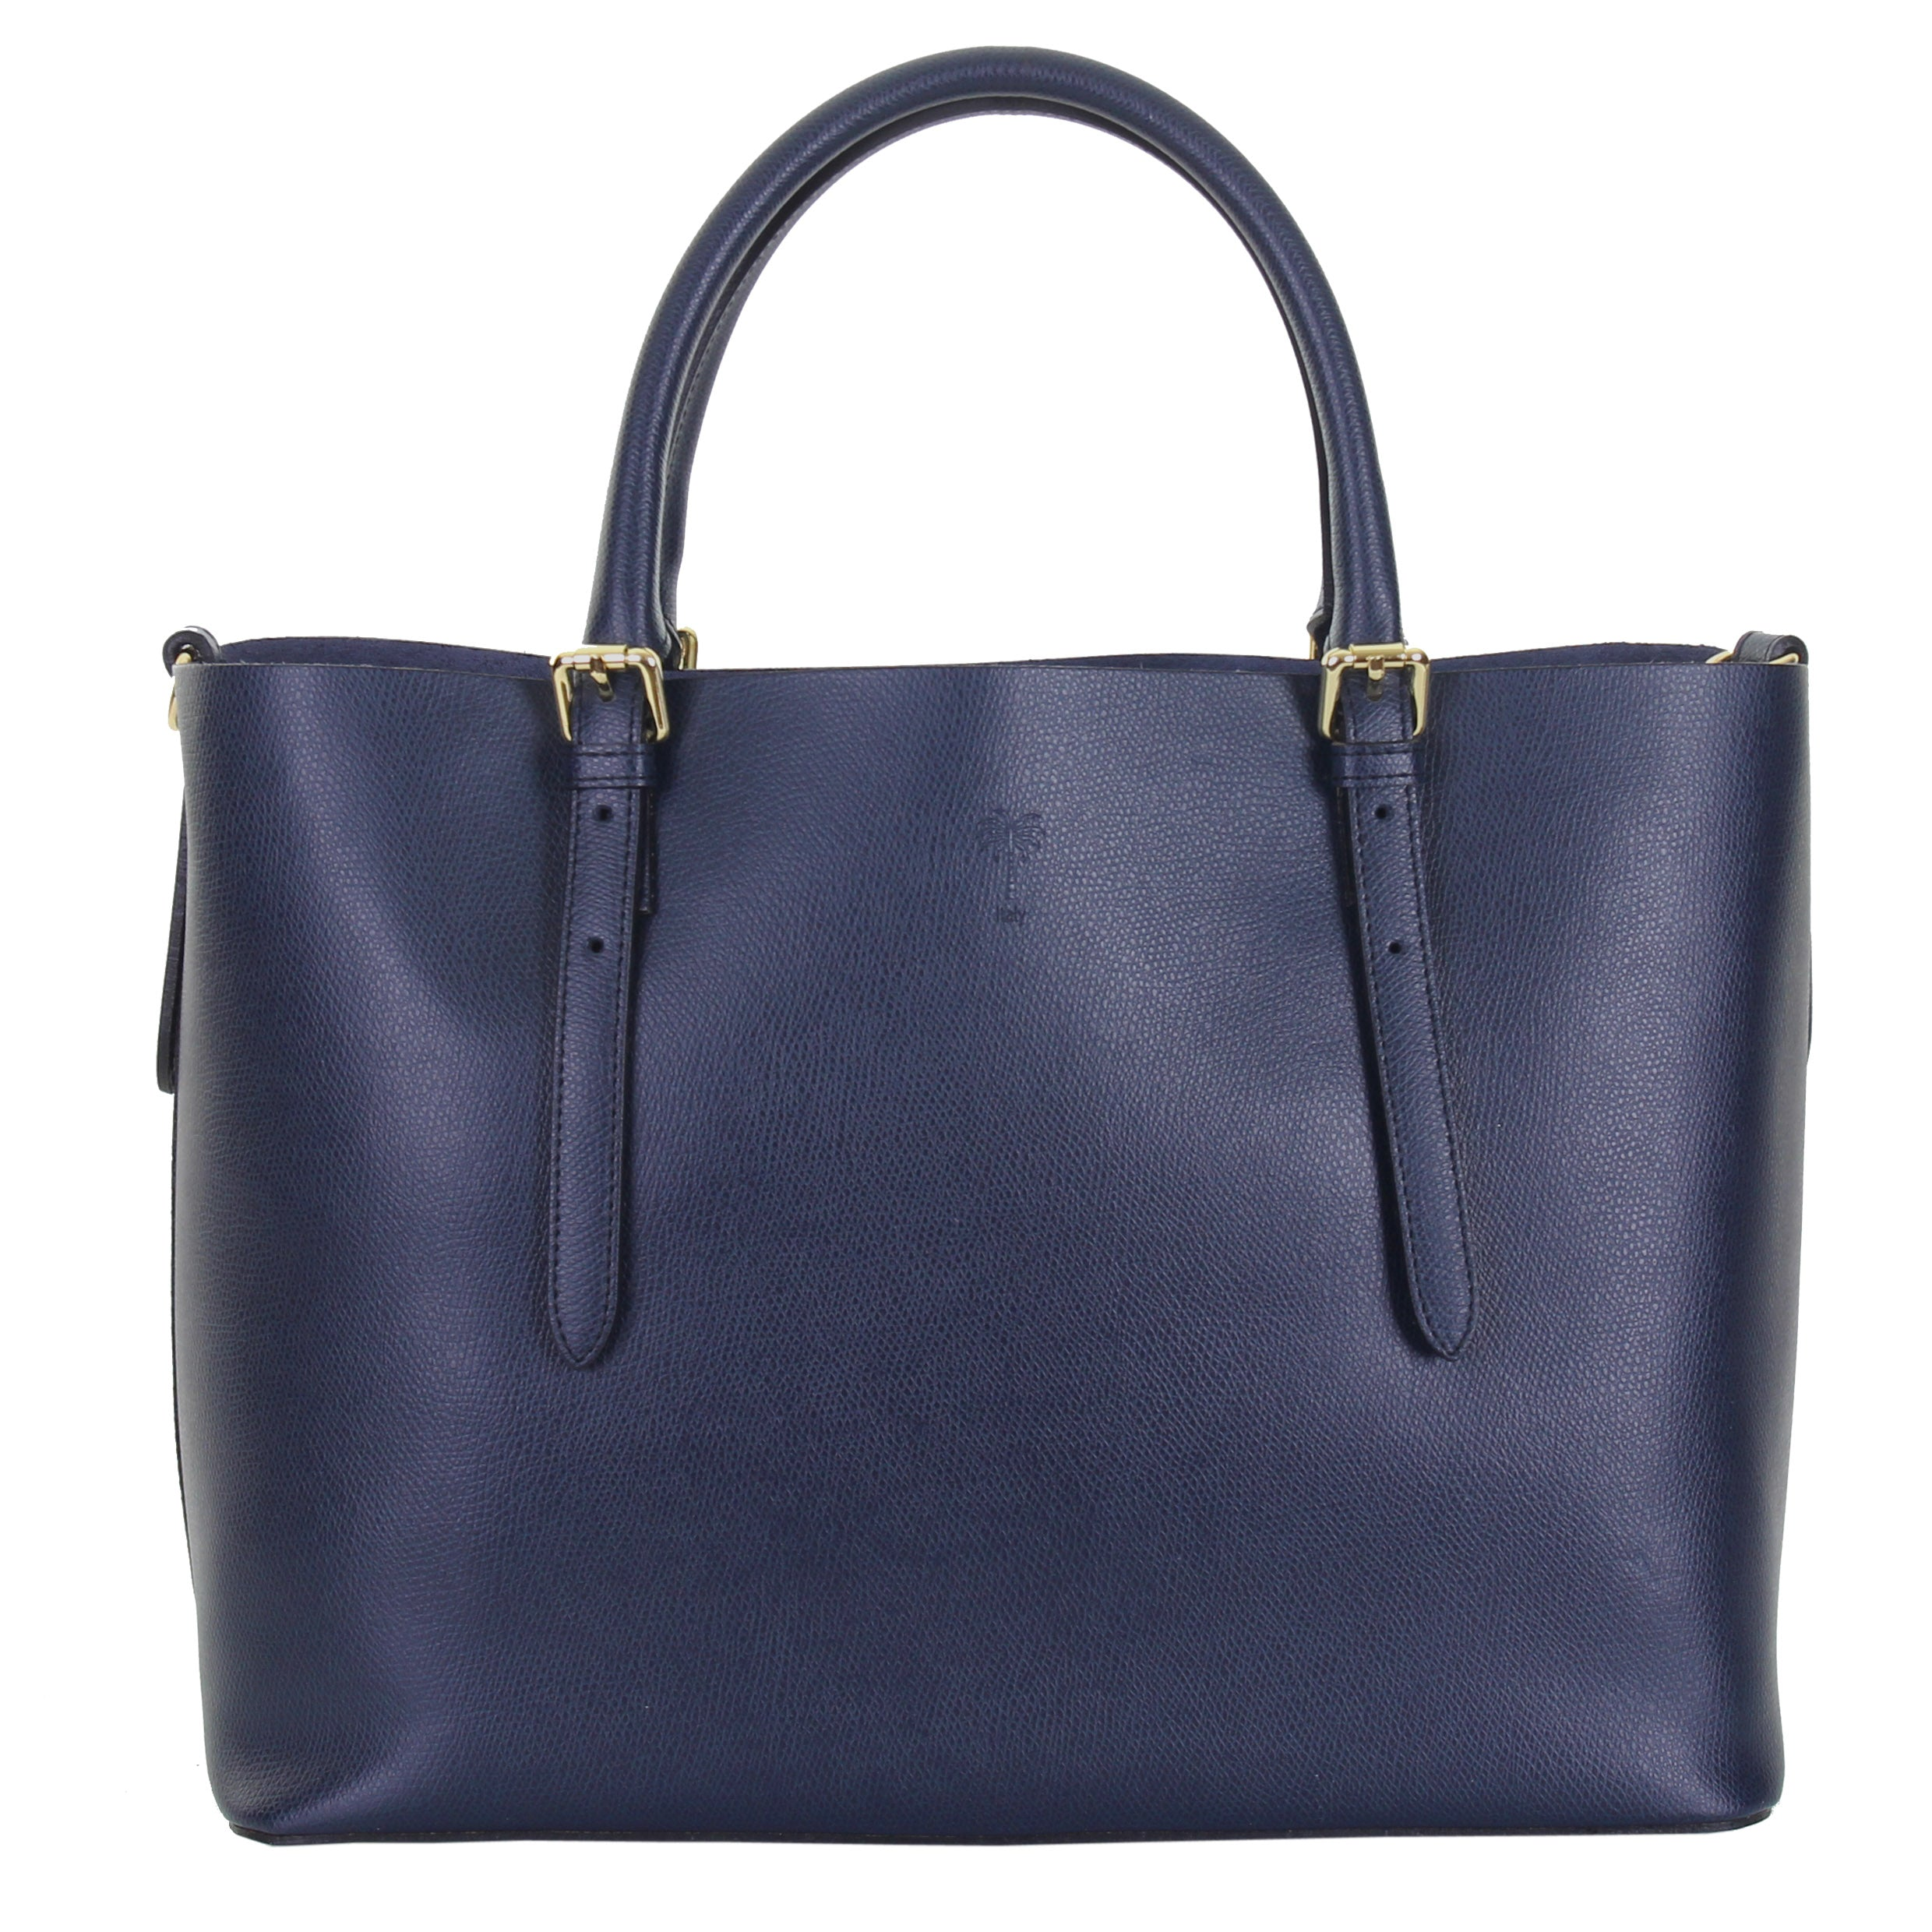 JENNIFER NAVY ITALIAN LEATHER TOTE - www.marlafiji.com